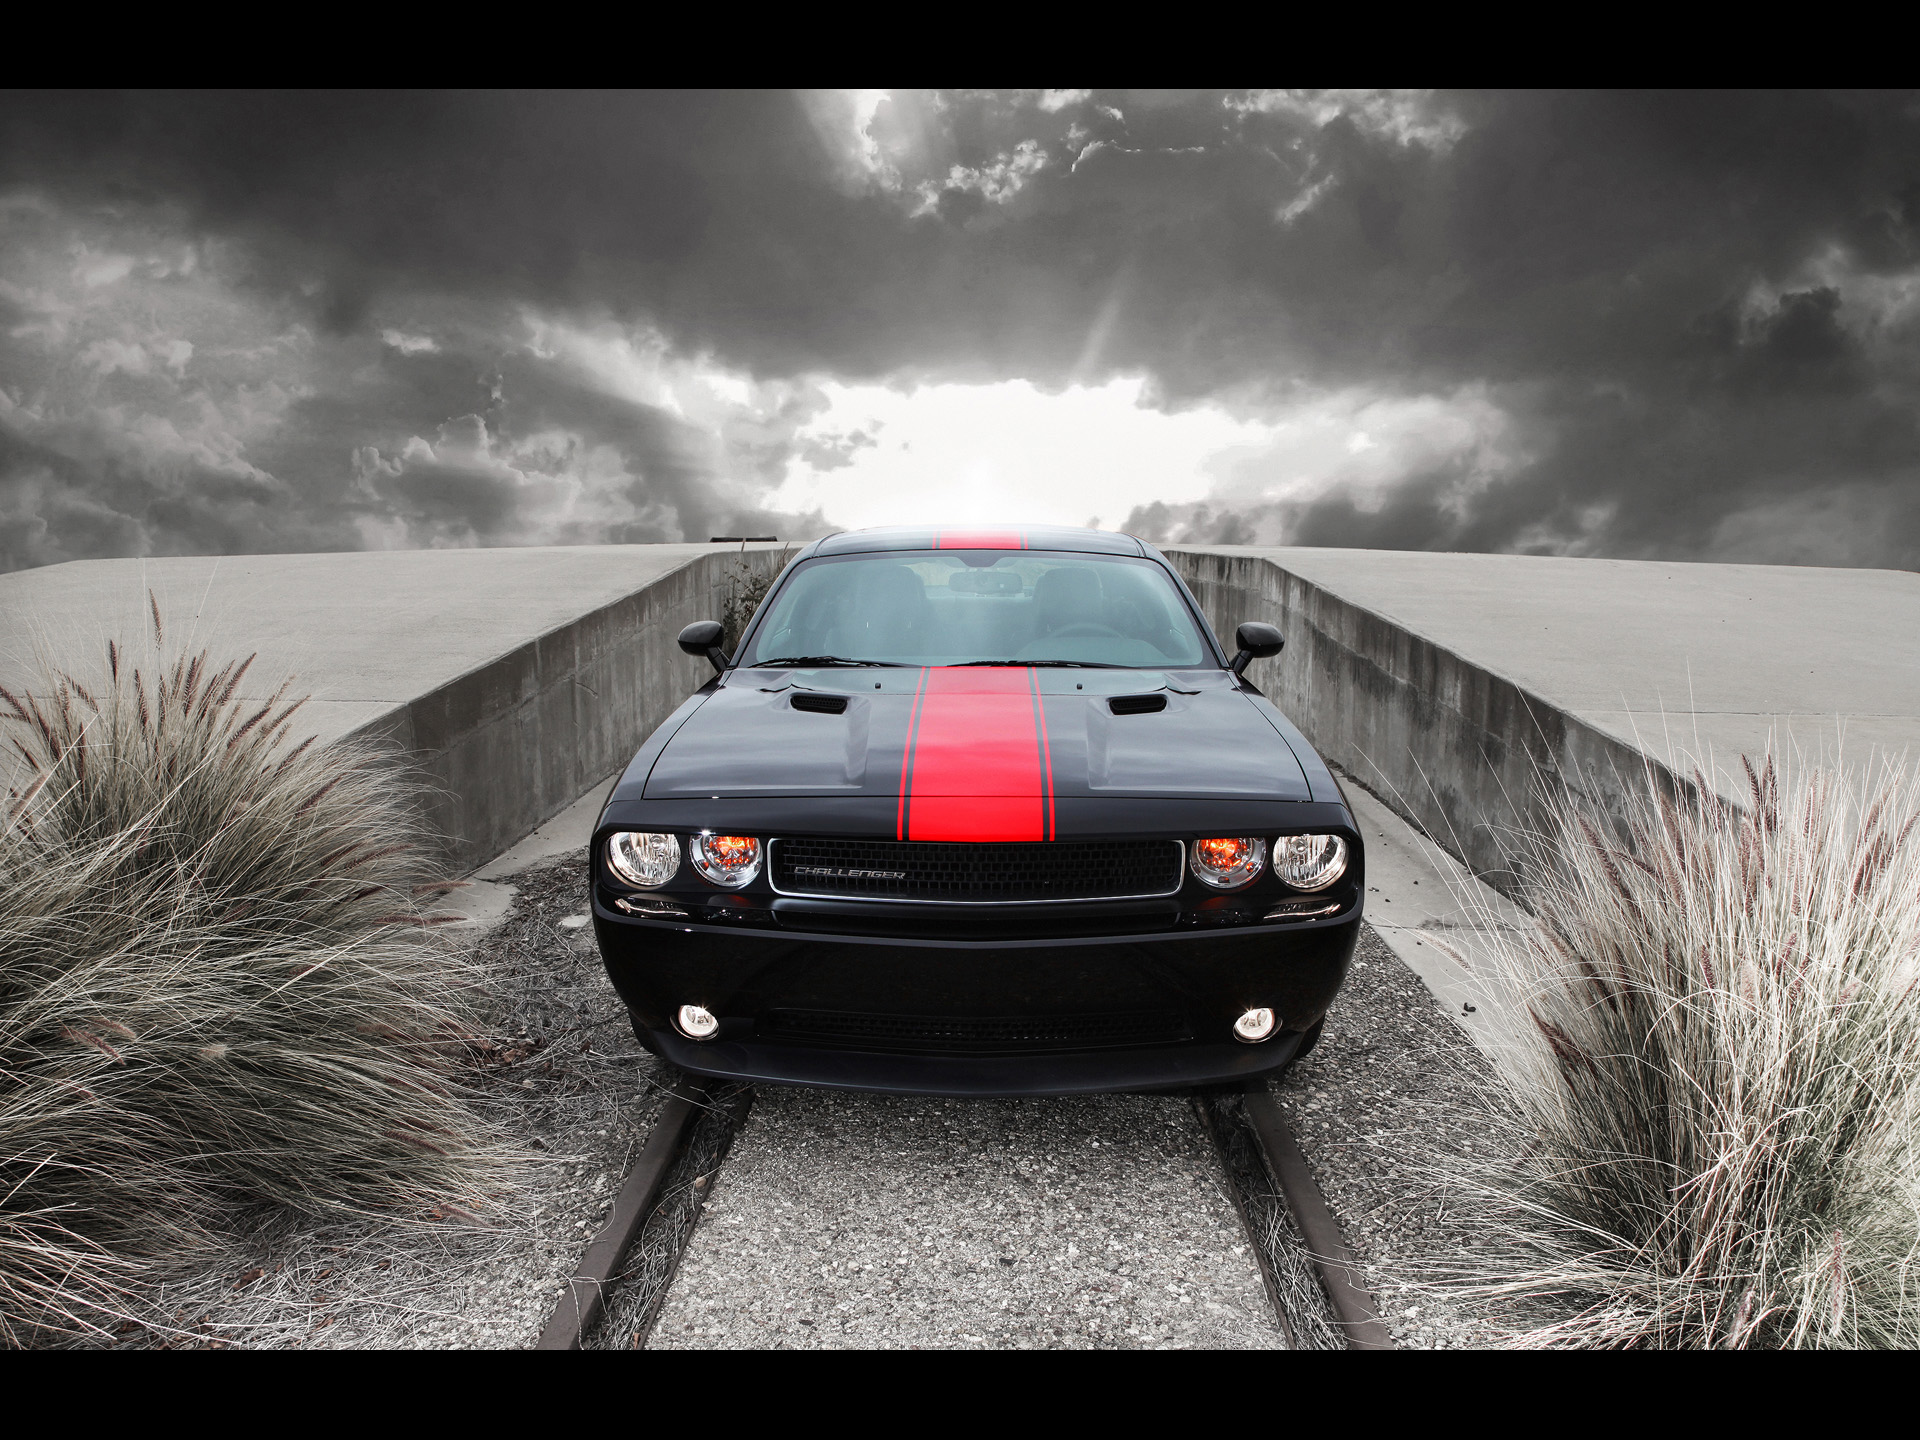 1920x1440 - Dodge Challenger Rallye Wallpapers 4